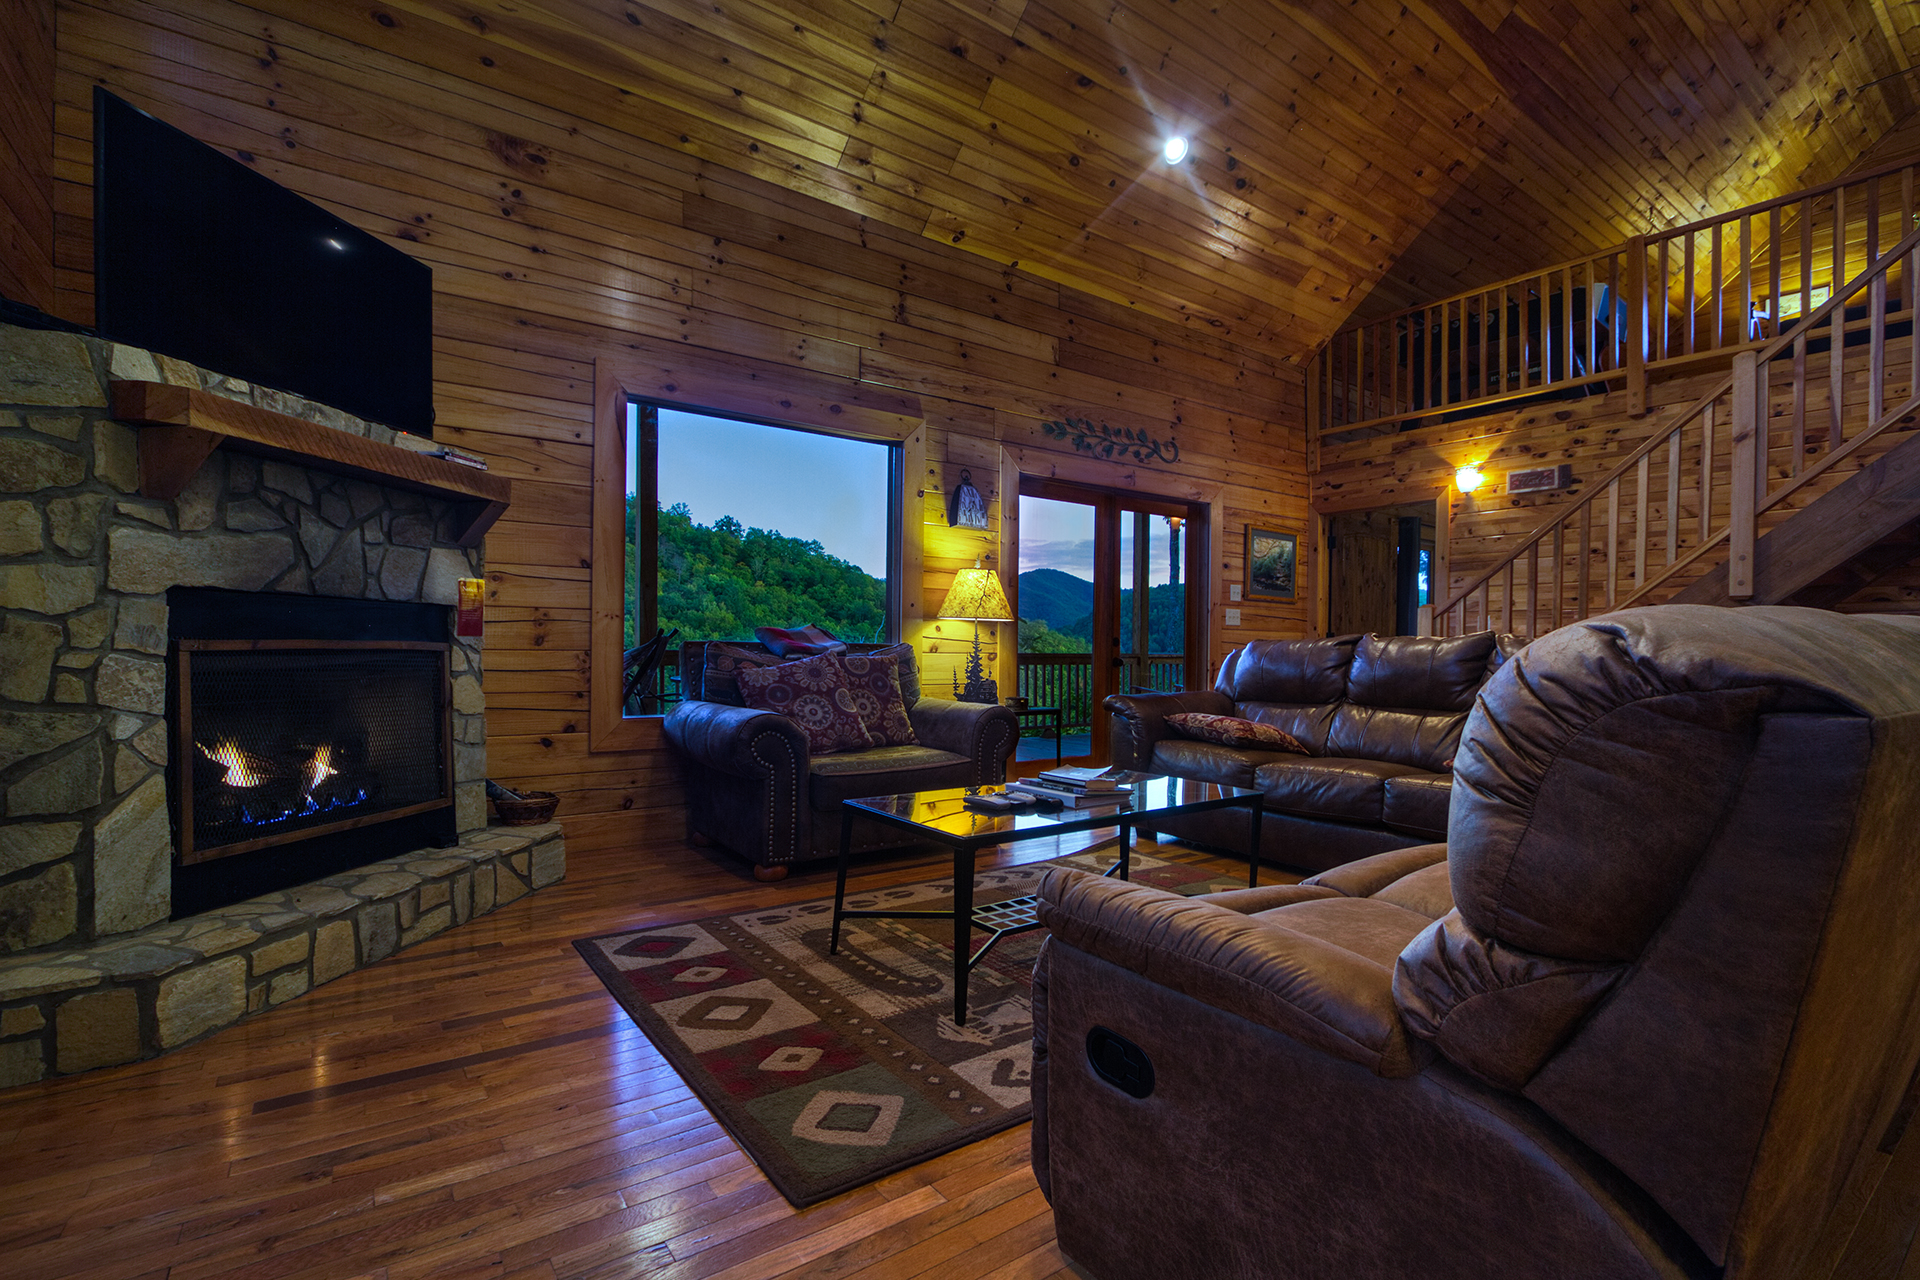 Cedar Ridge Smoky Mountain Rental Cabin Info By Carolina Mountain